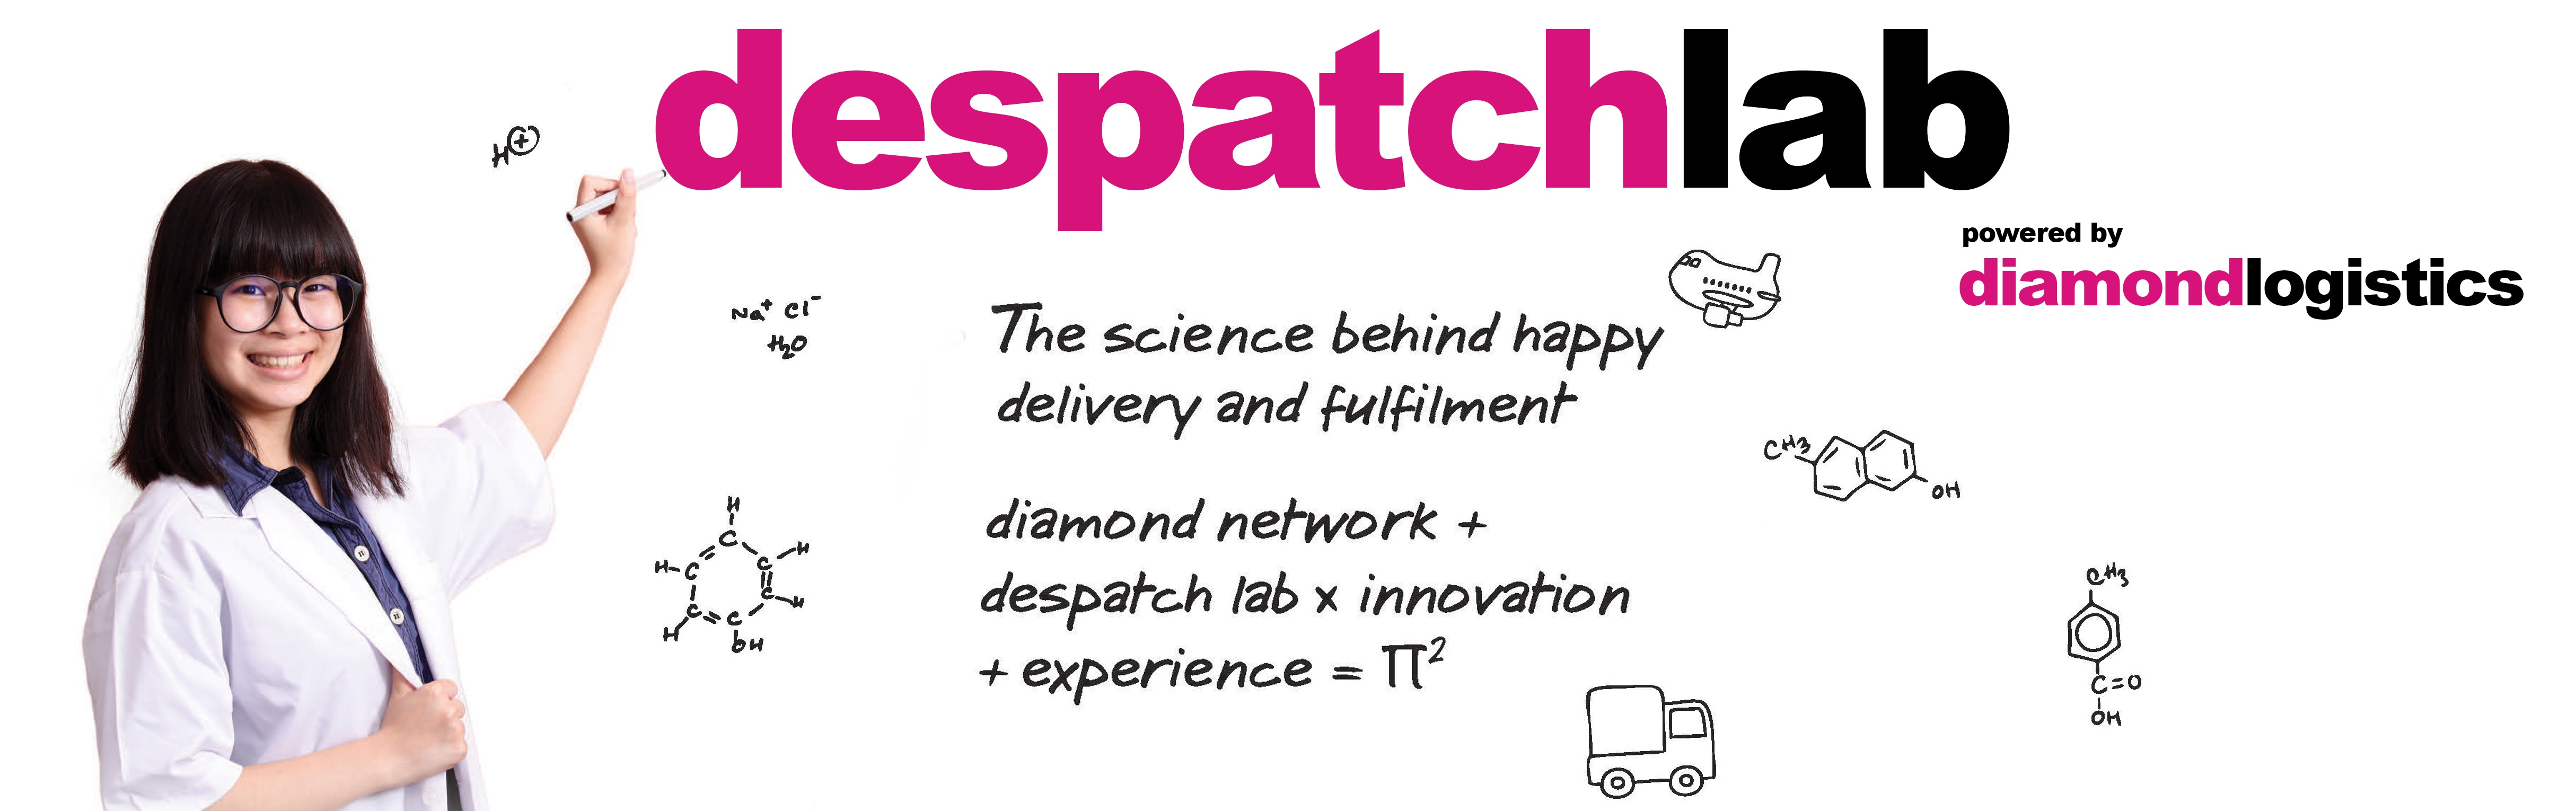 The science behind happy delivery and fulfilment. diamond network + despatchlab X innovation + experience = Profit